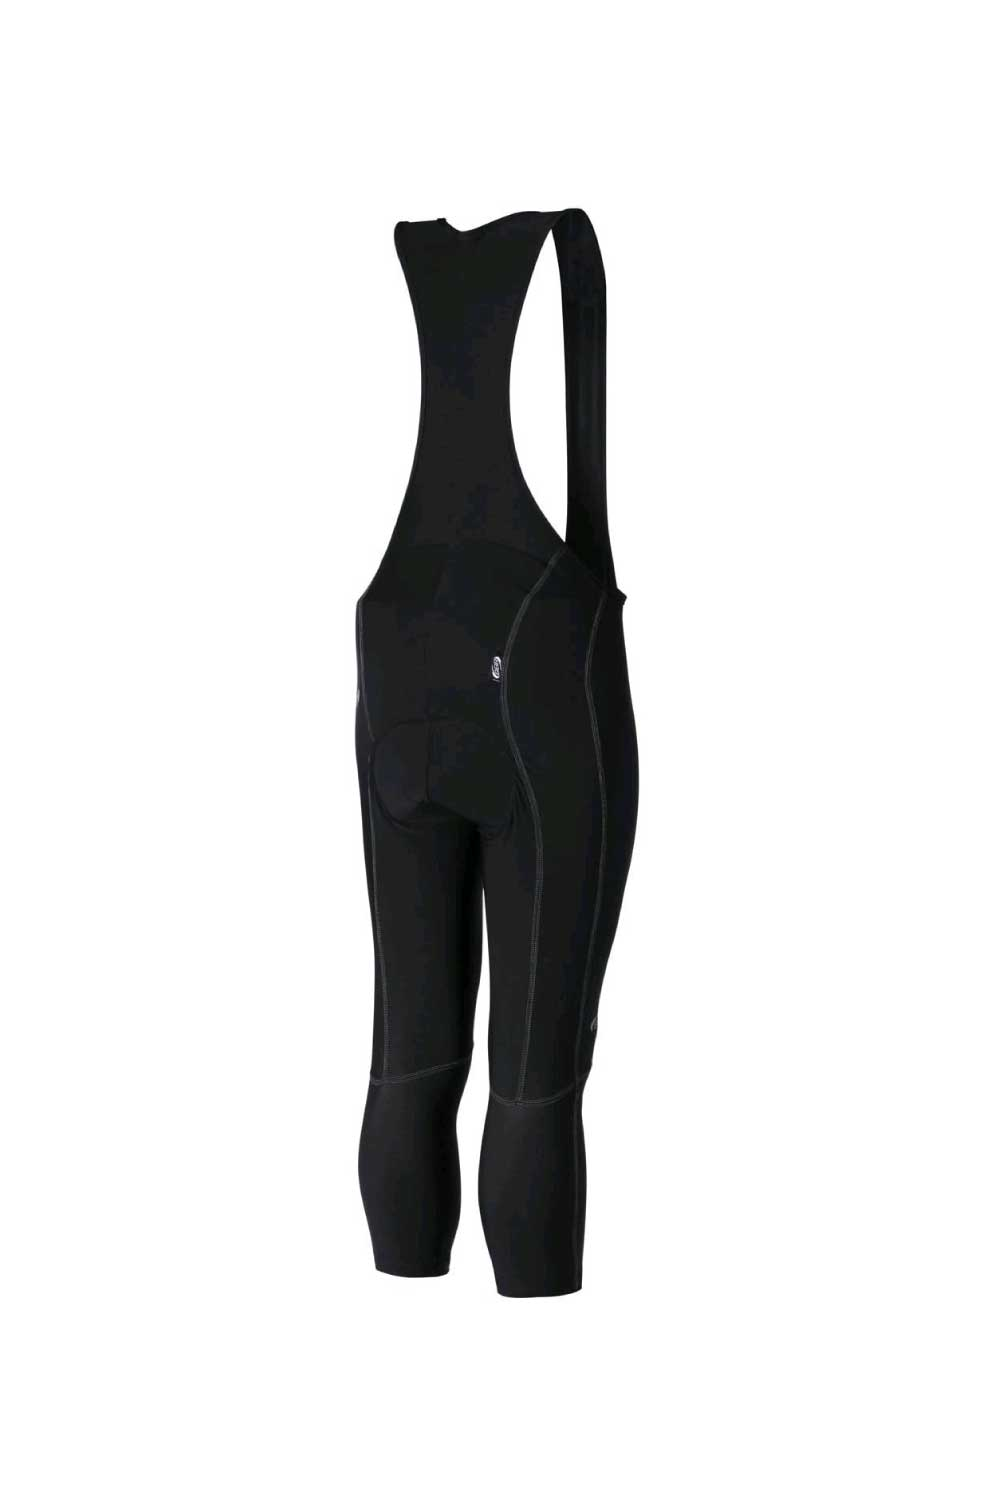 The BBB Quadra 3/4 Men's Cycling Bib Tights/Shorts